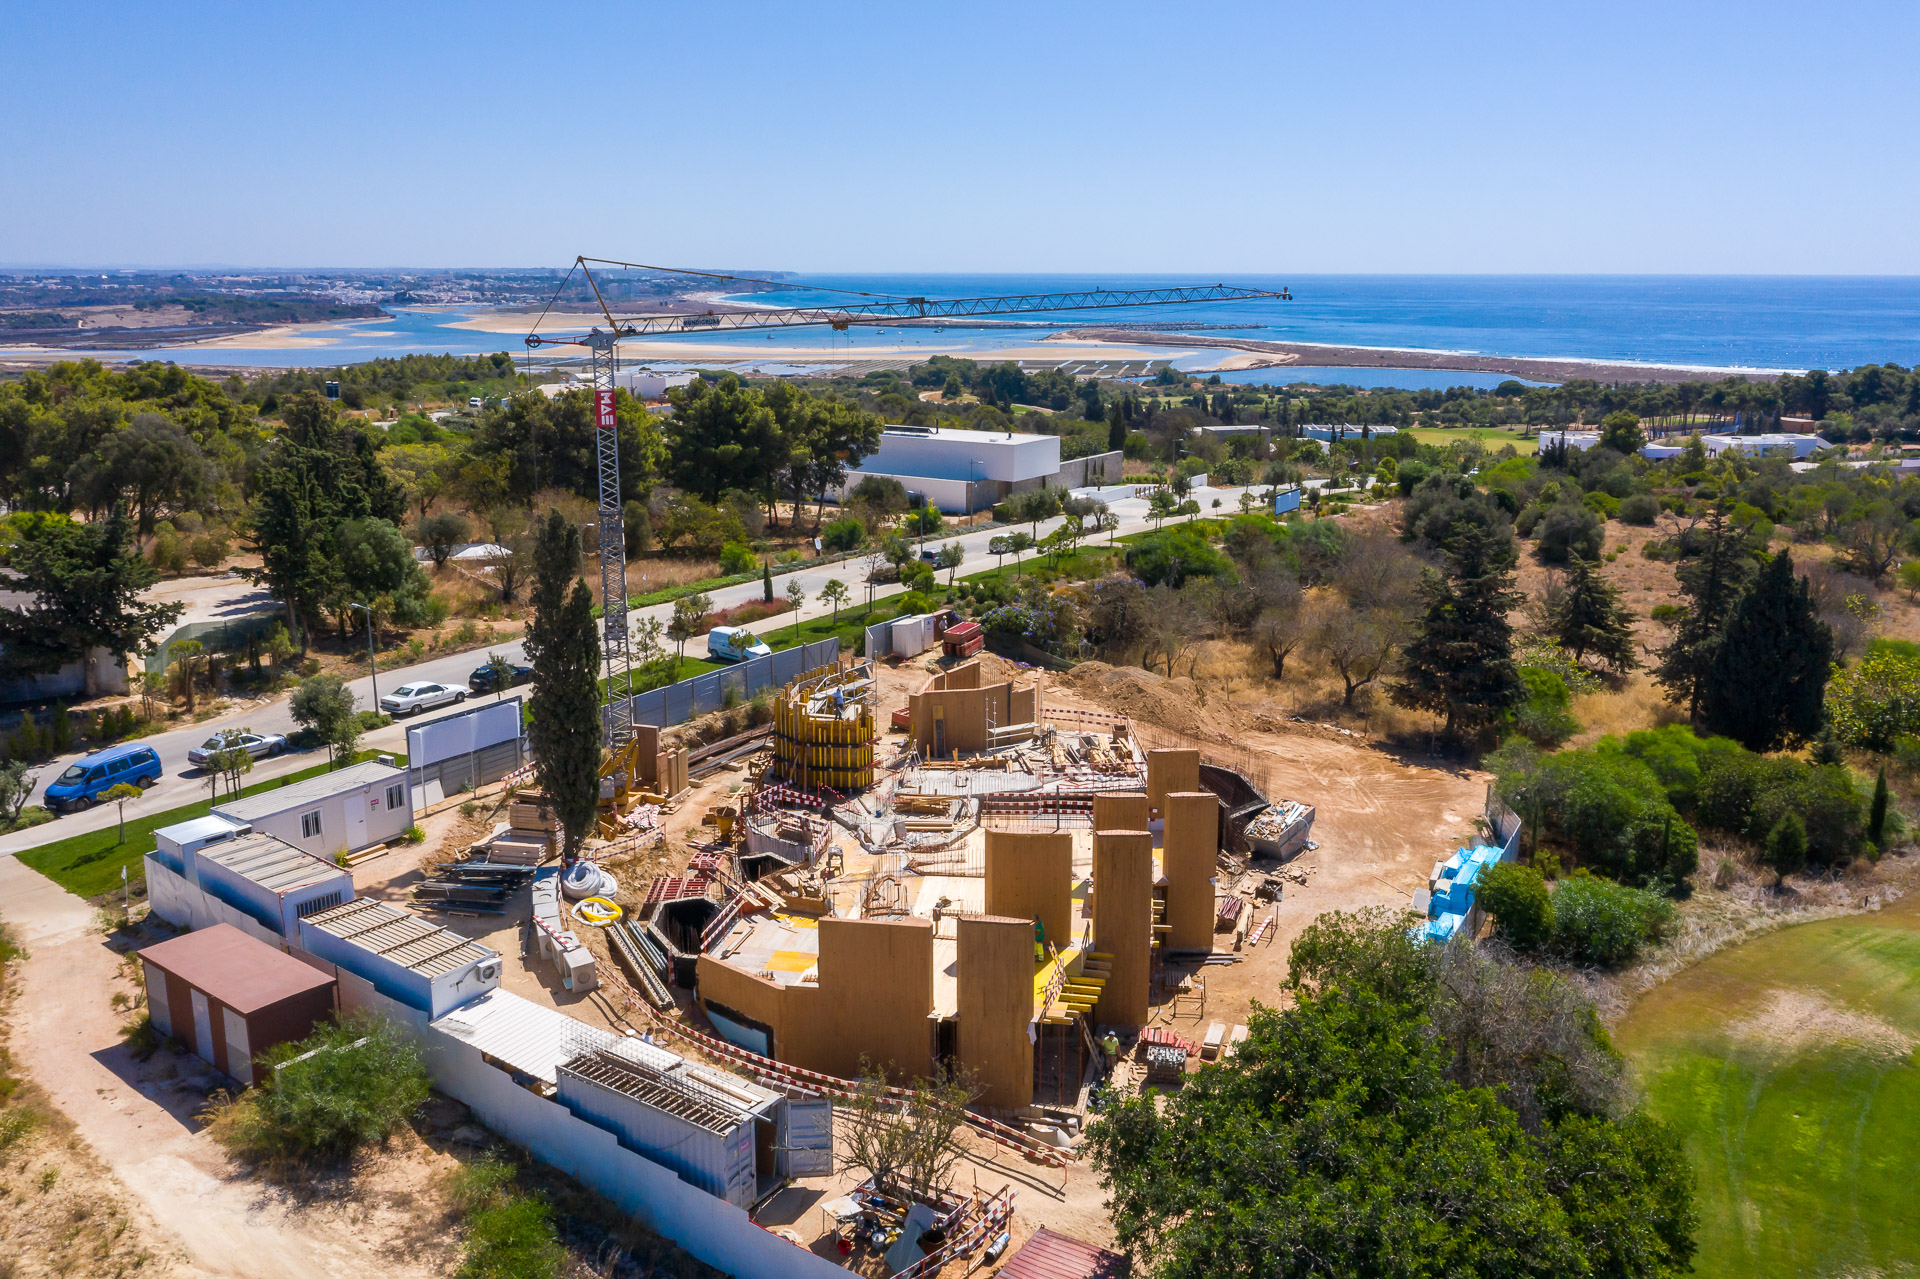 Palmares resort villa 19 under construction